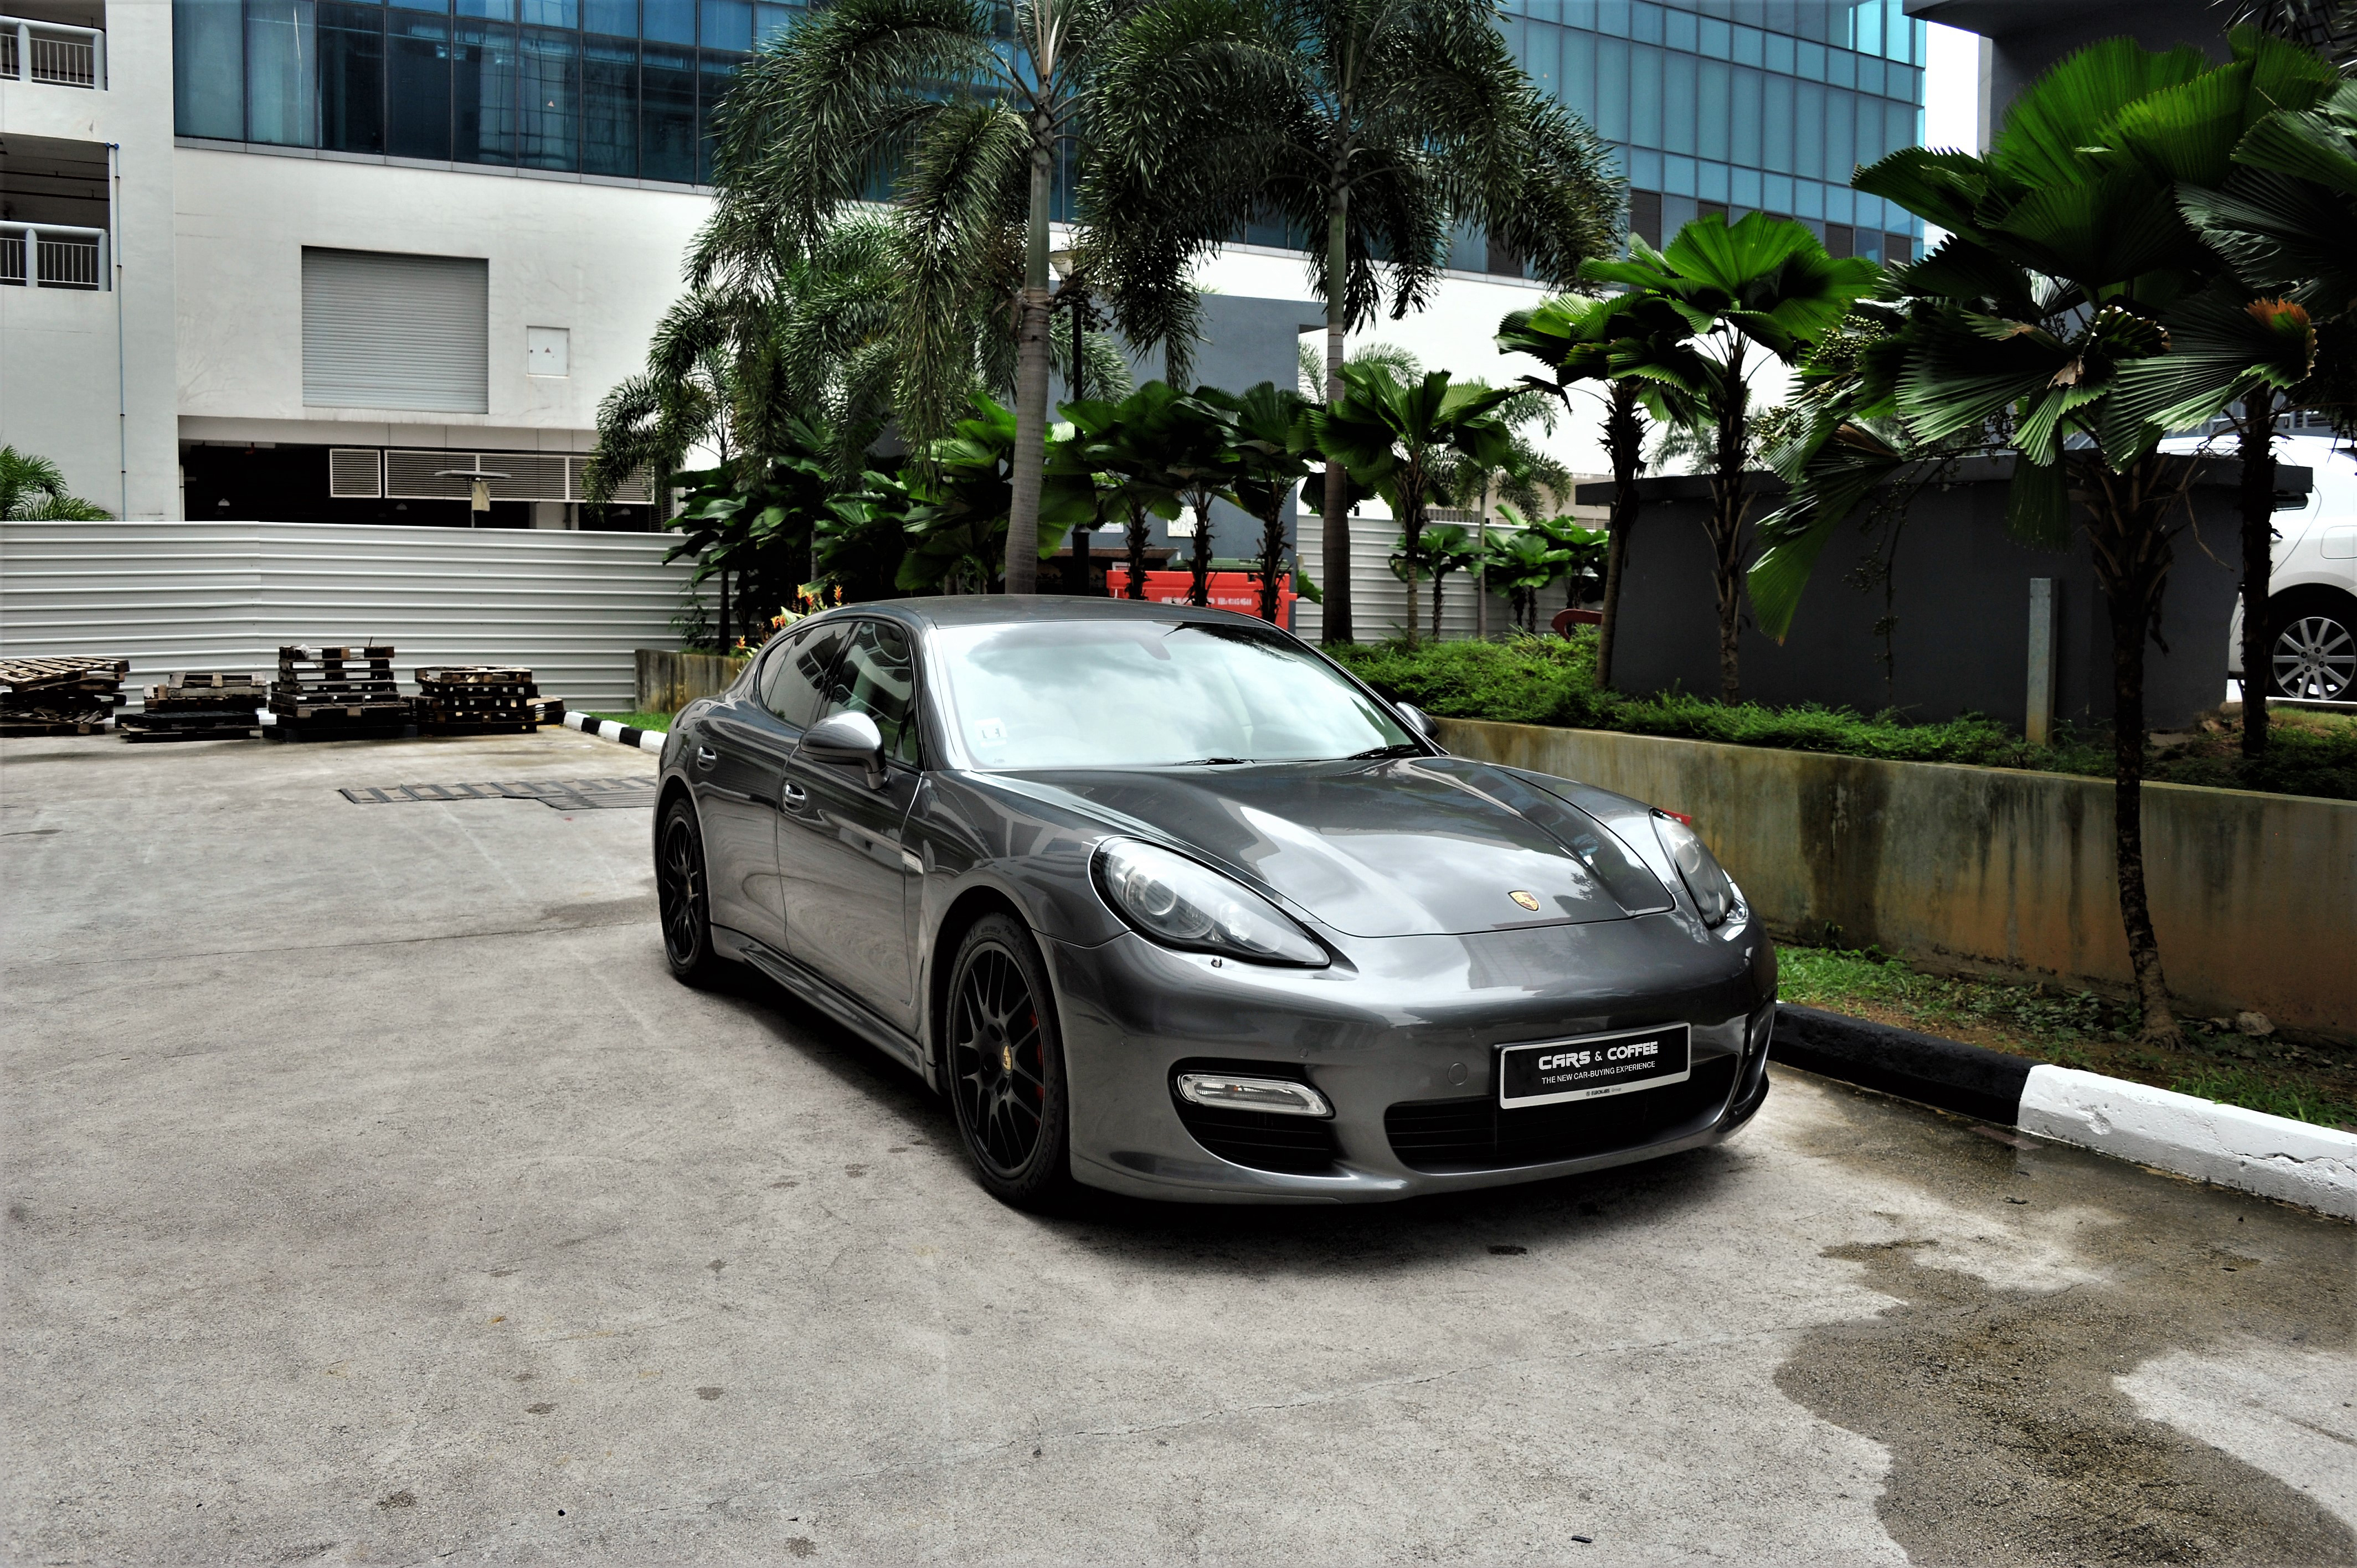 Certified Pre-Owned Porsche Panamera Turbo S 4.8A PDK | Cars and Coffee Singapore